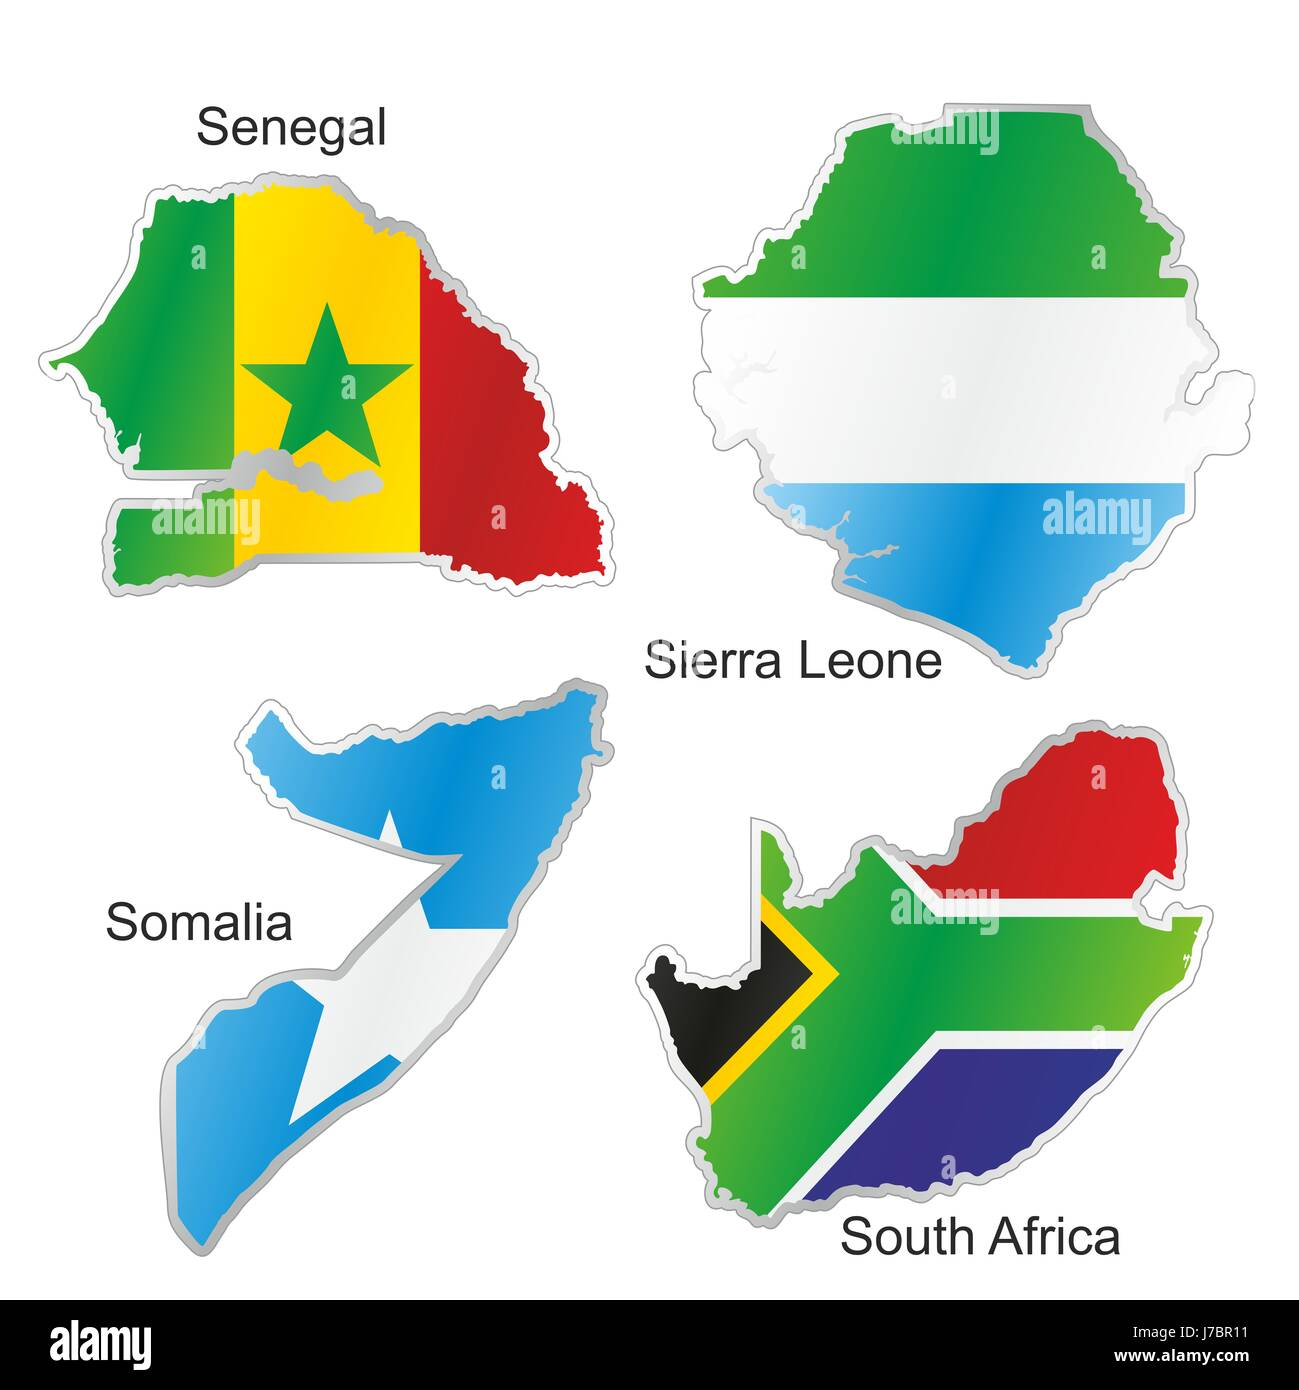 Flag Map Of Africa.Africa Flag South Senegal Somalia Map Atlas Map Of The World